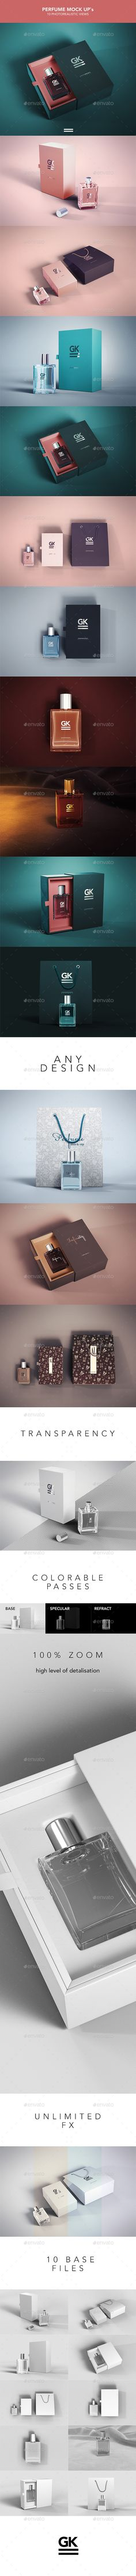 Perfume Mock-up. Download here: http://graphicriver.net/item/perfume-mockup/15591572?ref=ksioks